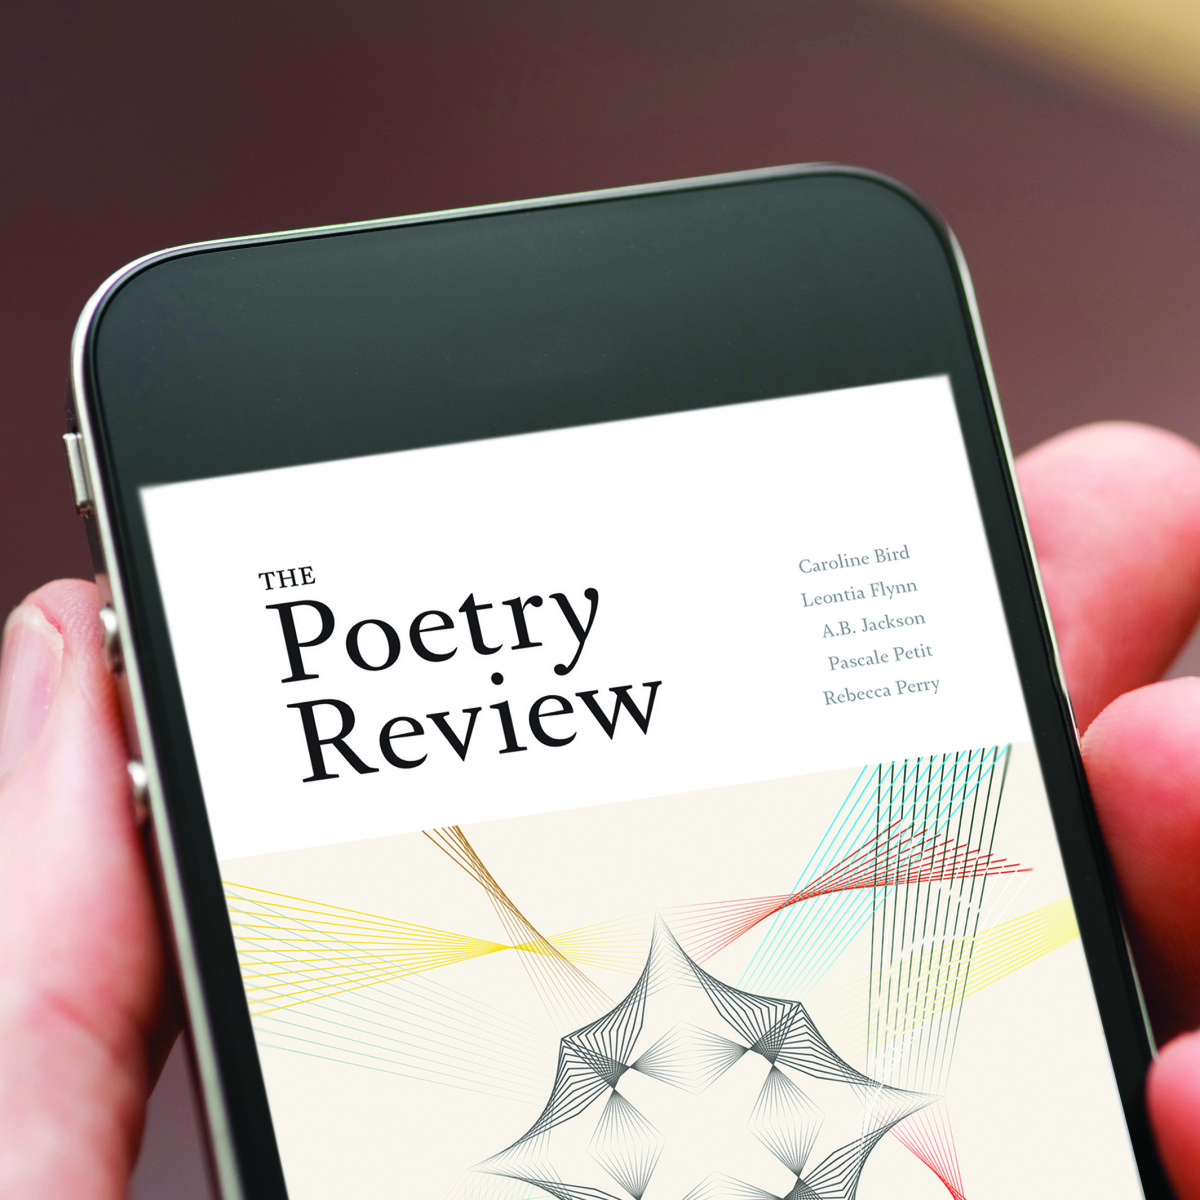 The Poetry Review digital issue